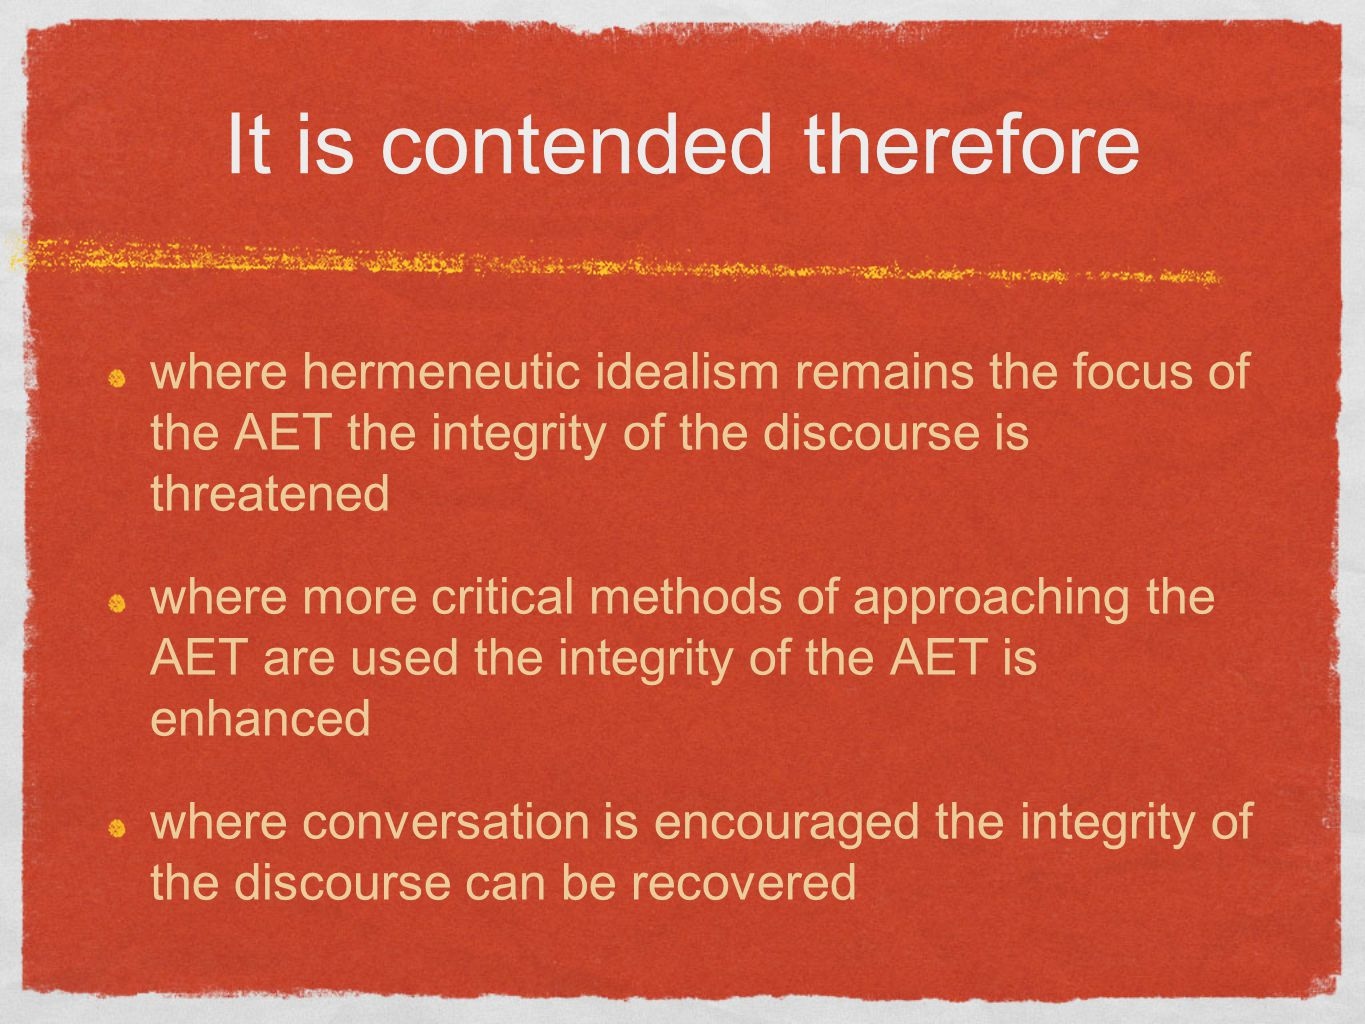 It is contended therefore where hermeneutic idealism remains the focus of the AET the integrity of the discourse is threatened where more critical methods of approaching the AET are used the integrity of the AET is enhanced where conversation is encouraged the integrity of the discourse can be recovered